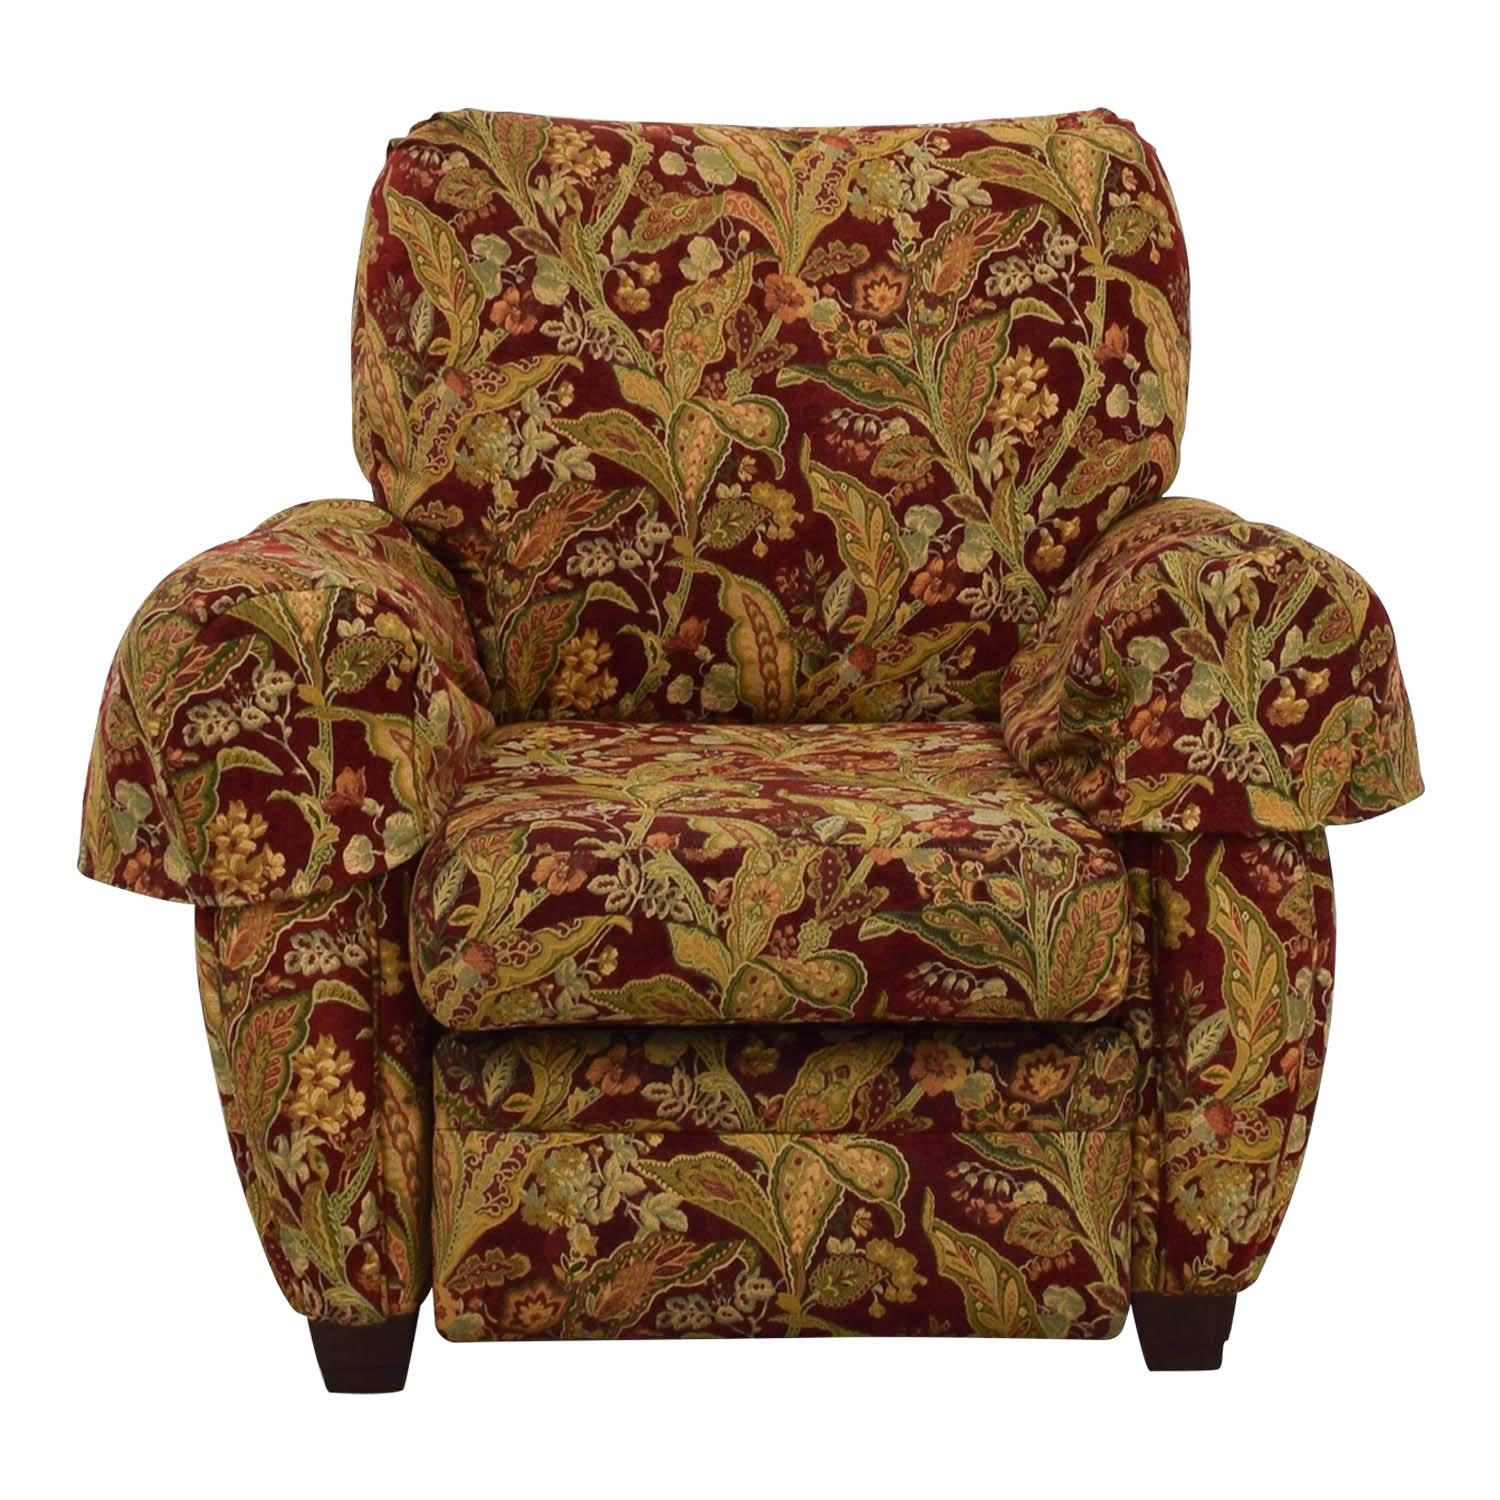 Lazy Boy Lazy Boy Burgundy Floral Recliner second hand